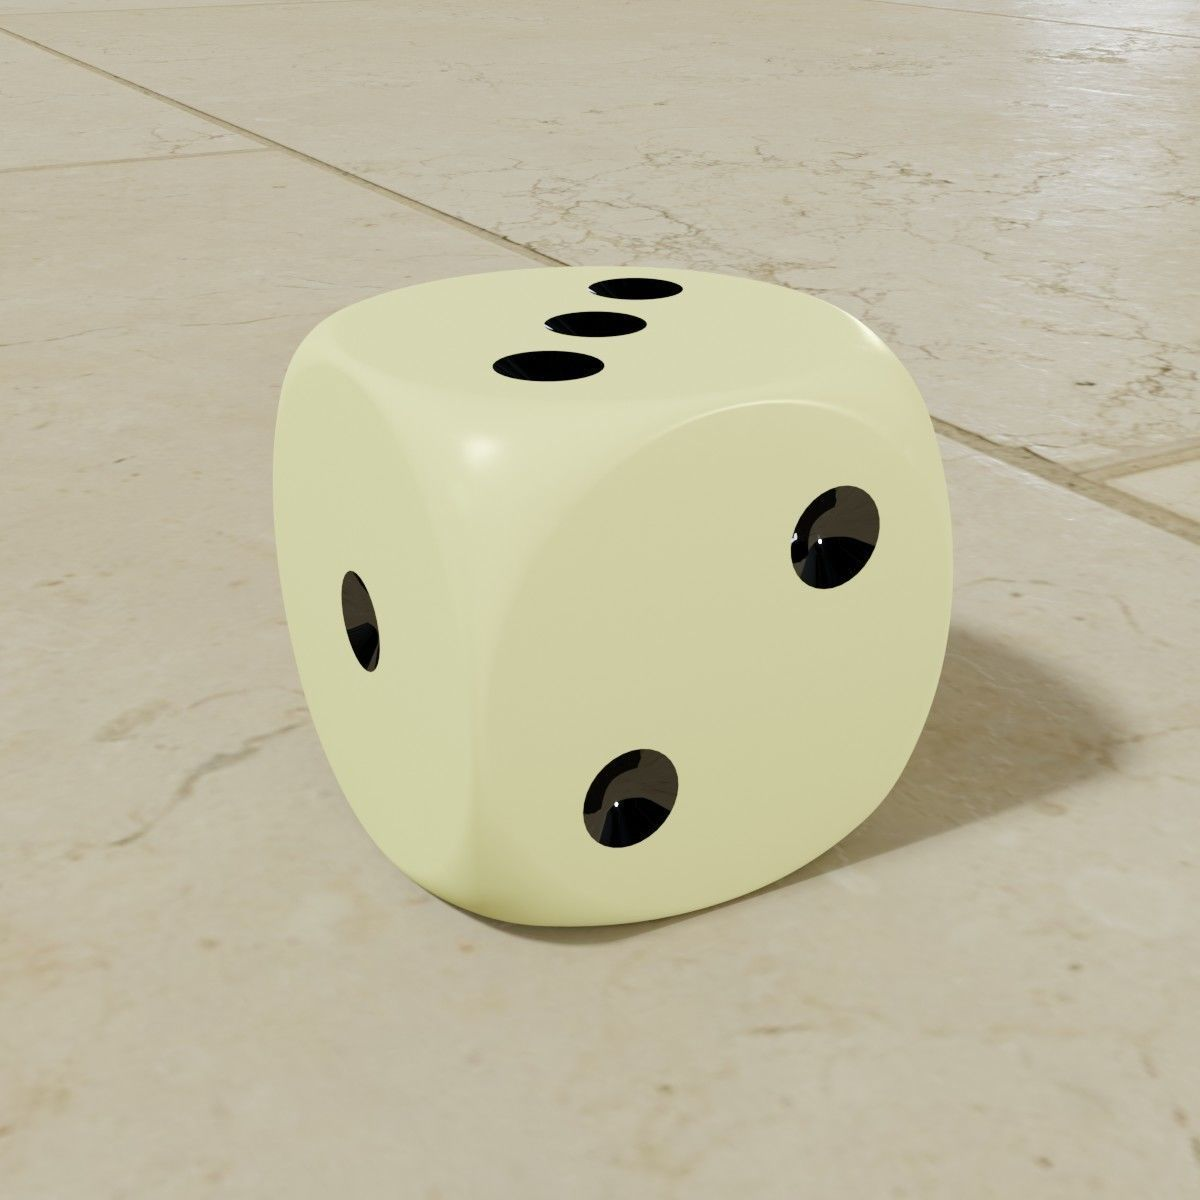 3D Dice Collection - Standard Die